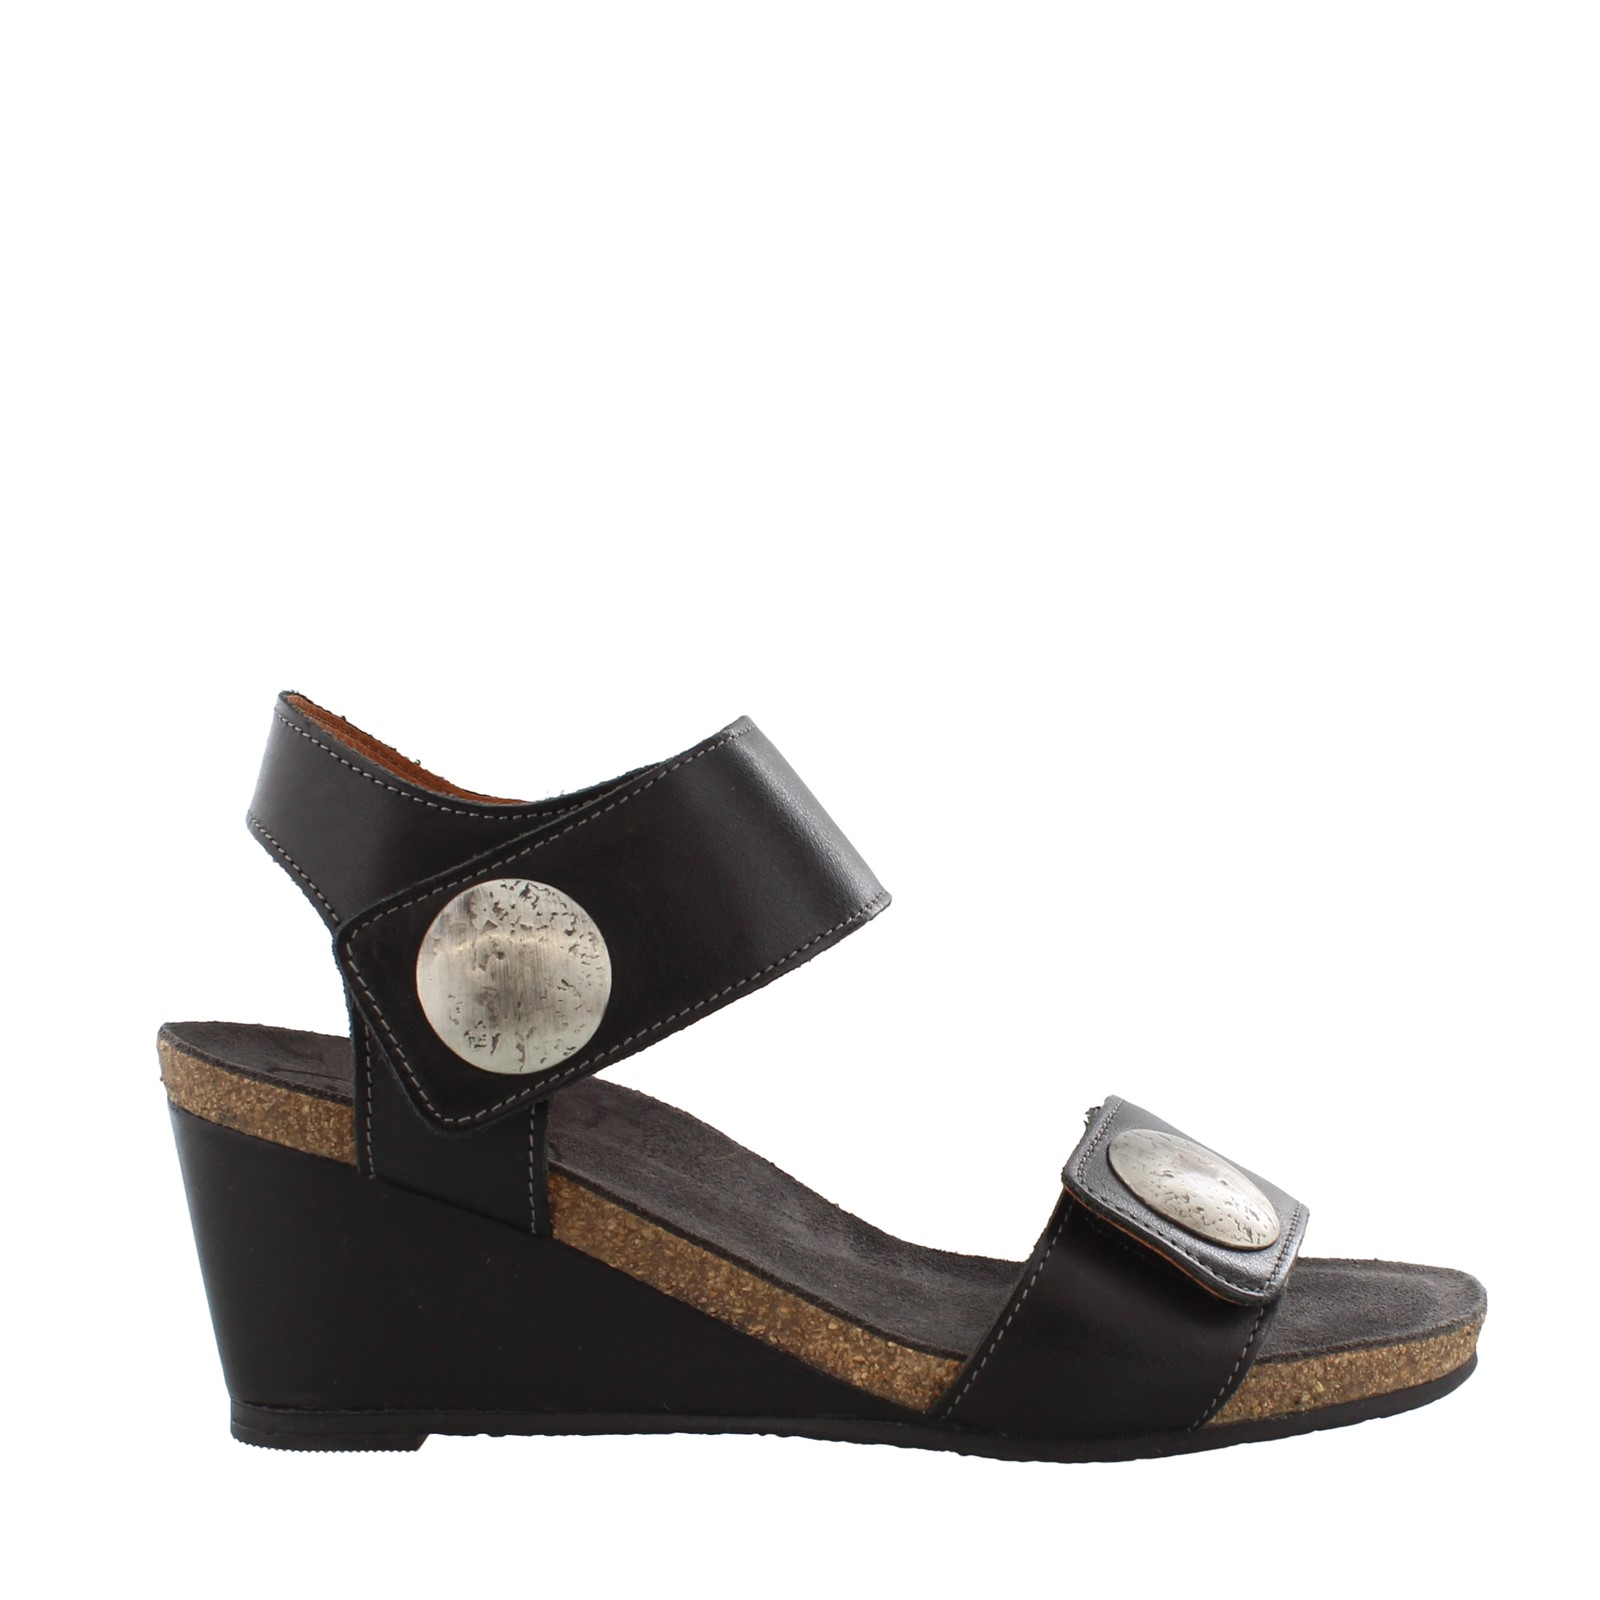 Women's Taos, Carousel 2 Wedge Sandal